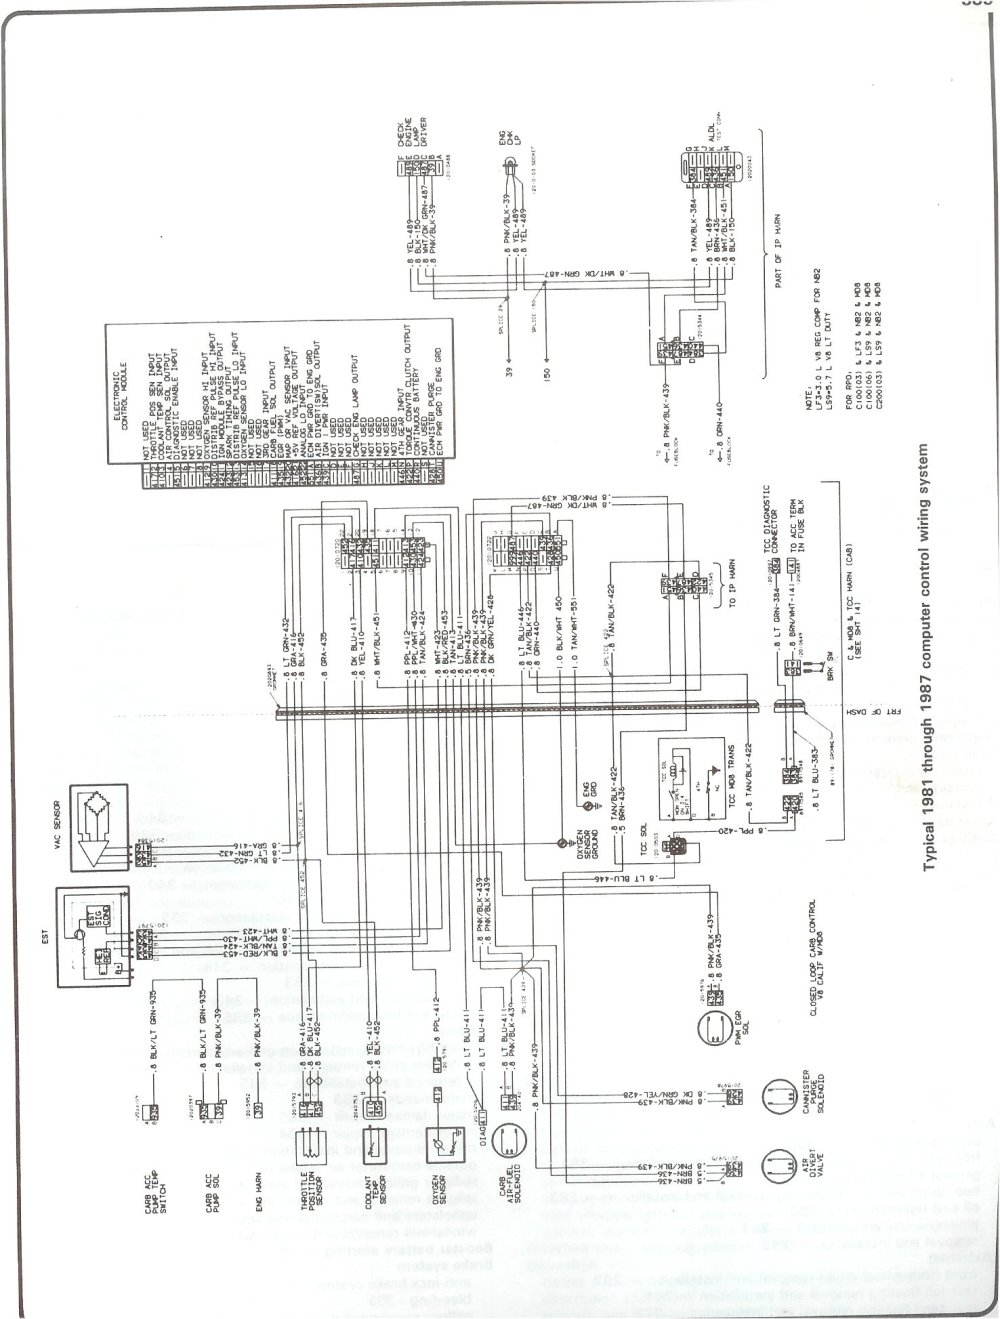 medium resolution of 83 camaro wiring diagram wiring diagram databasechevrolet wiring diagram